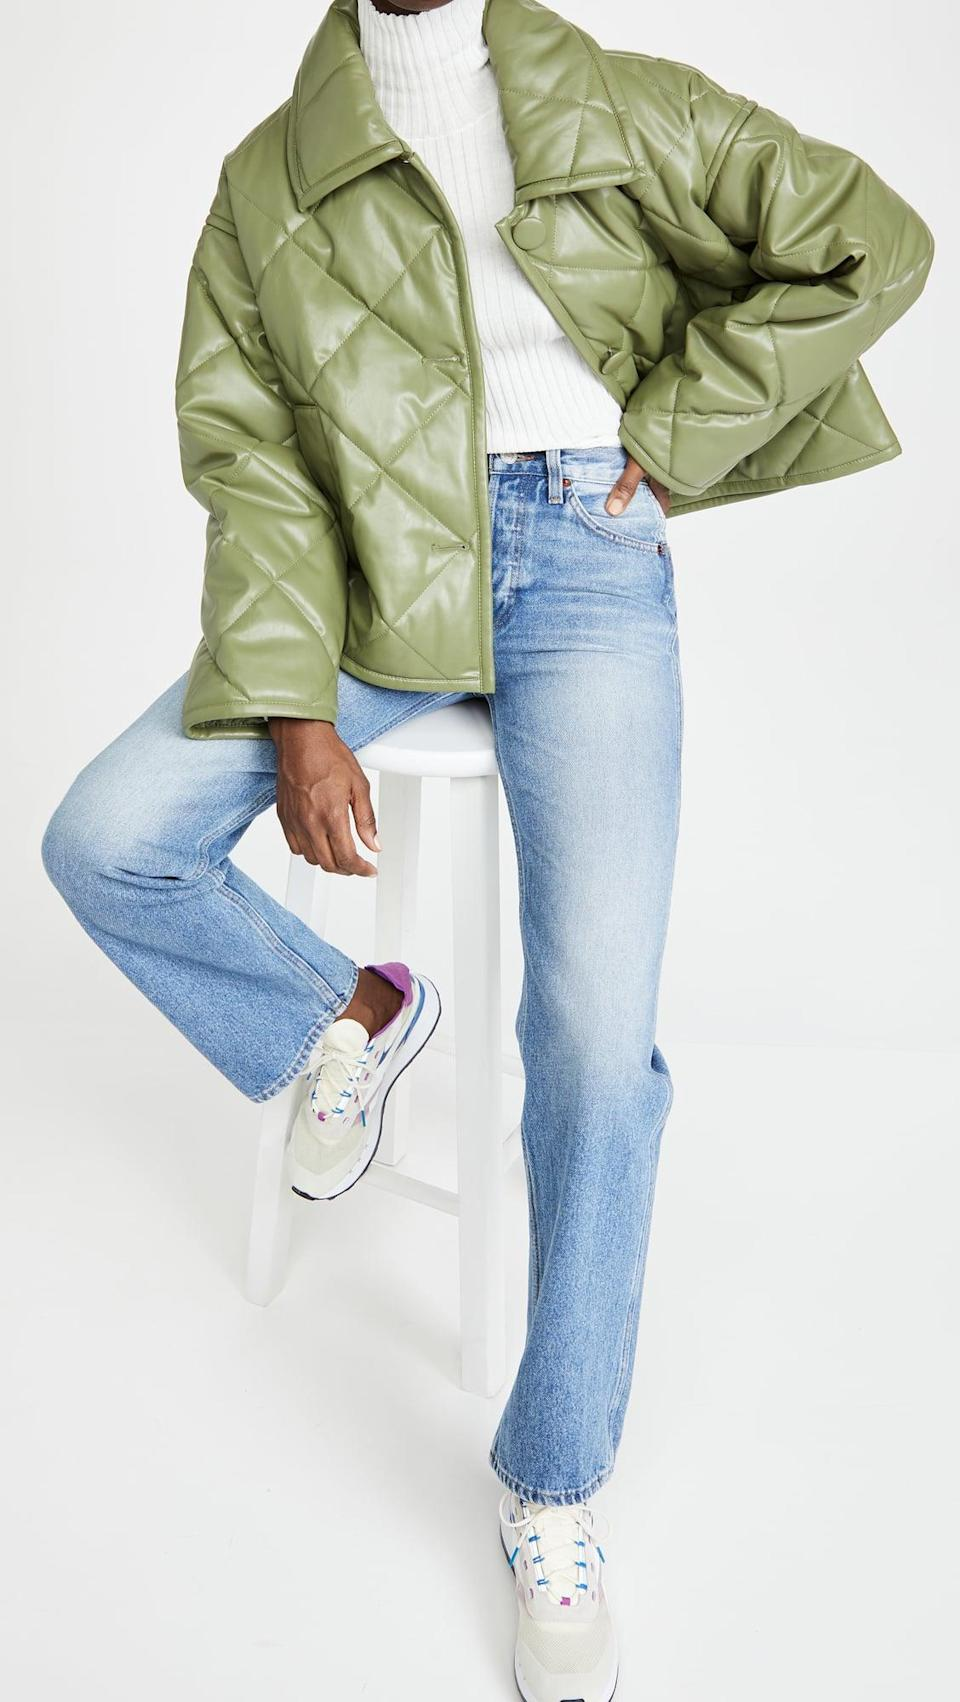 <p>This mid-toned green is going to be everywhere this year. It's flattering, calming, and so aesthetically pleasing. We love this <span>Stand Studio Jacinda Puffy Jacket</span> ($430).</p>